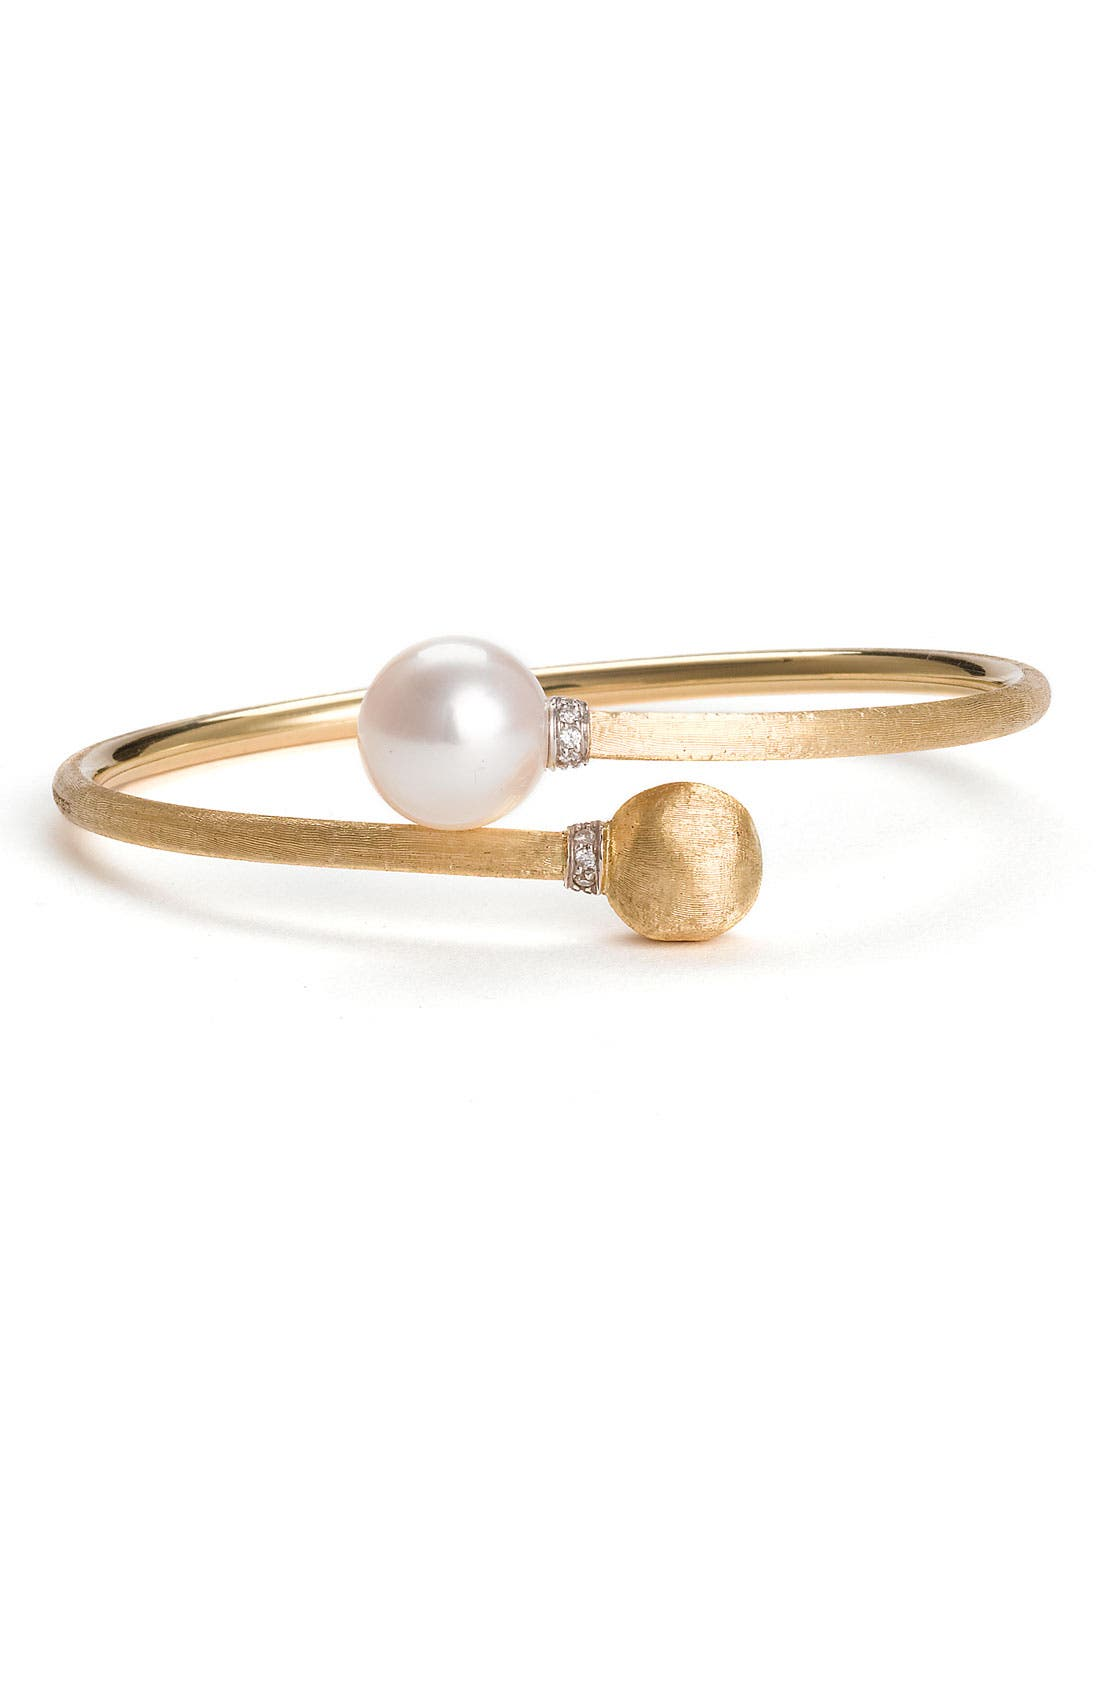 Alternate Image 1 Selected - Marco Bicego 'Africa' Pearl & Diamond Bangle